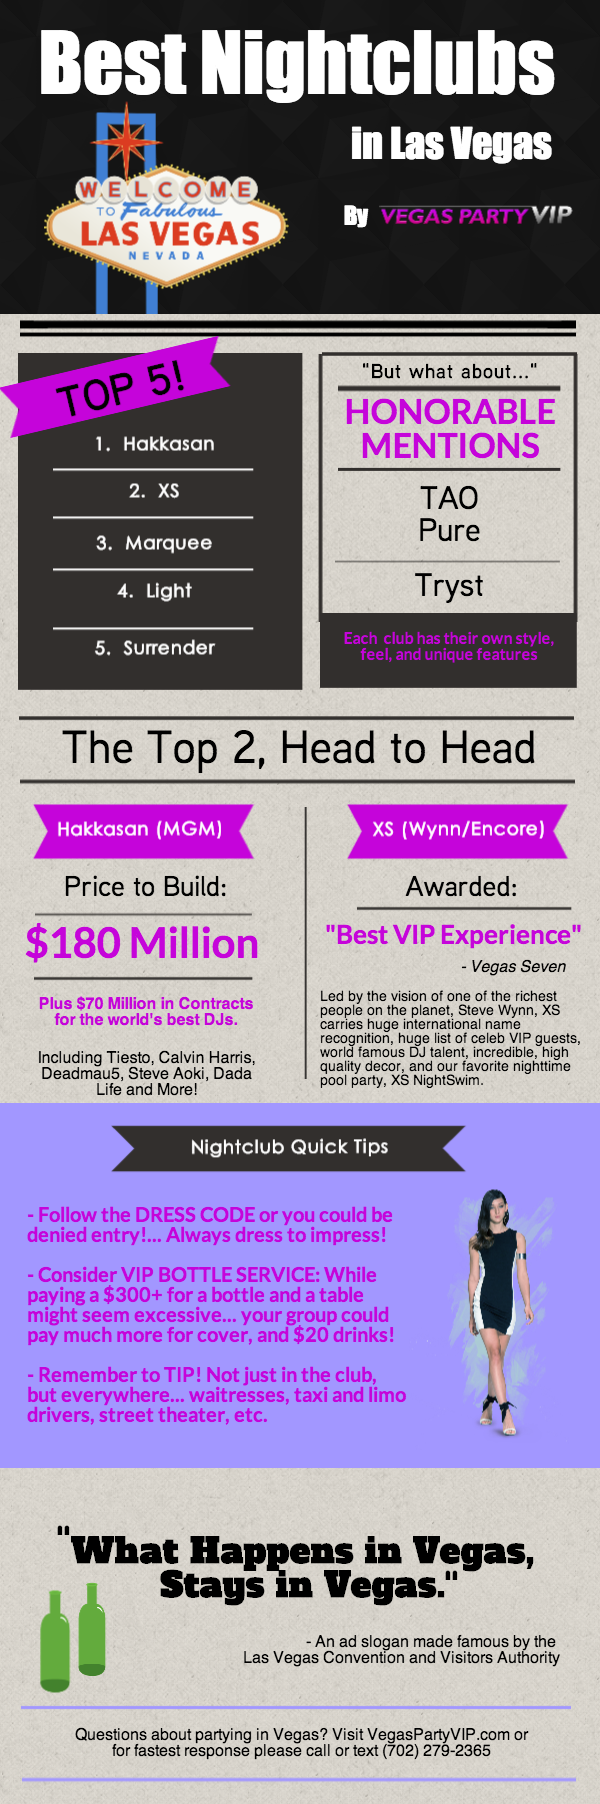 Top 5 Las Vegas Nightclubs in 2014 Infographic